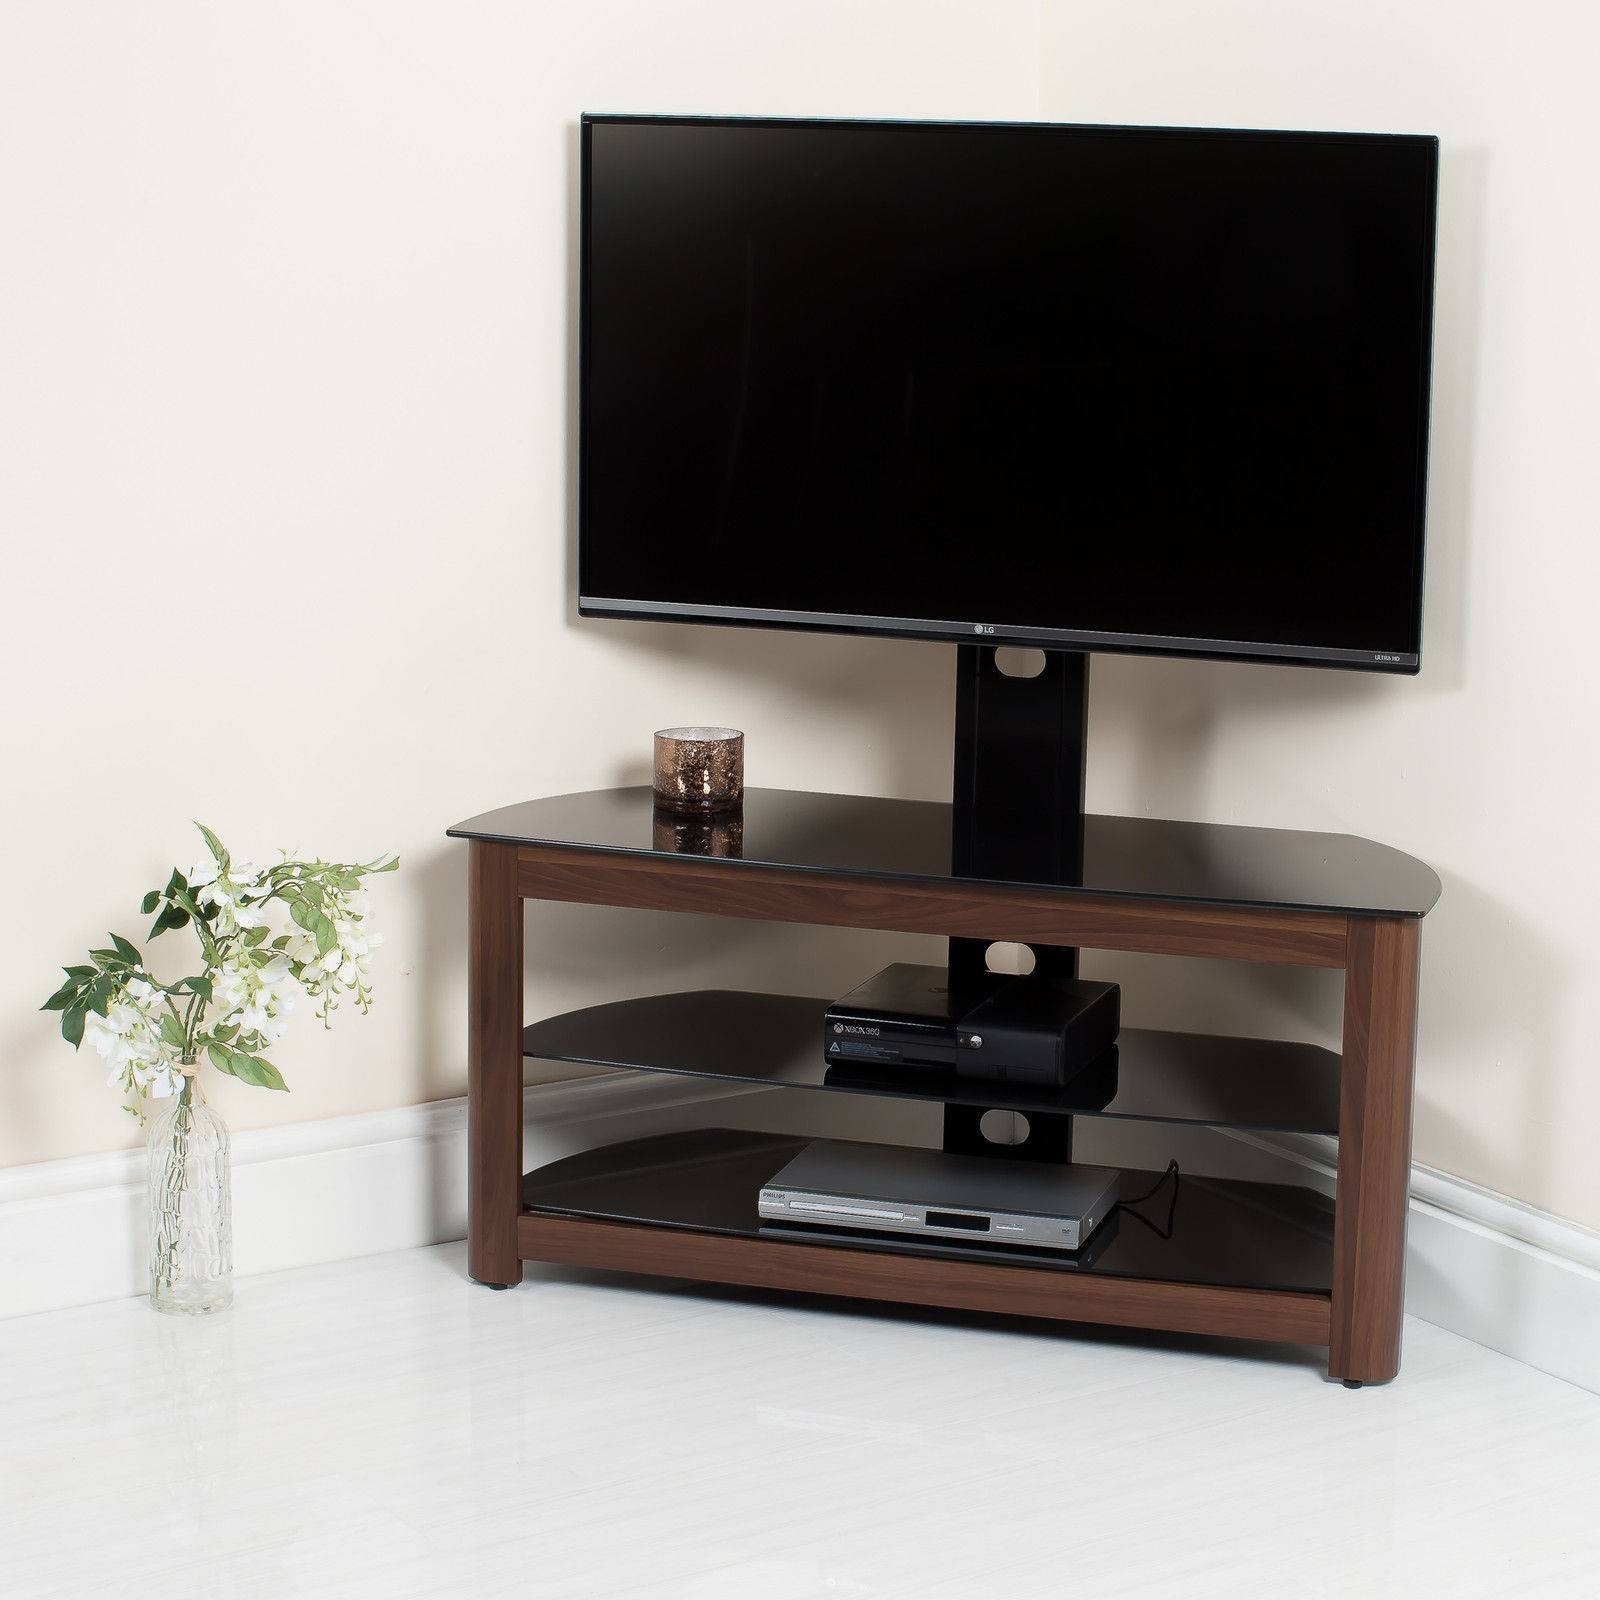 Walnut High Gloss Tv Stand With Swivel Bracket Abreo Home Furniture In Walnut Tv Stands (View 5 of 15)